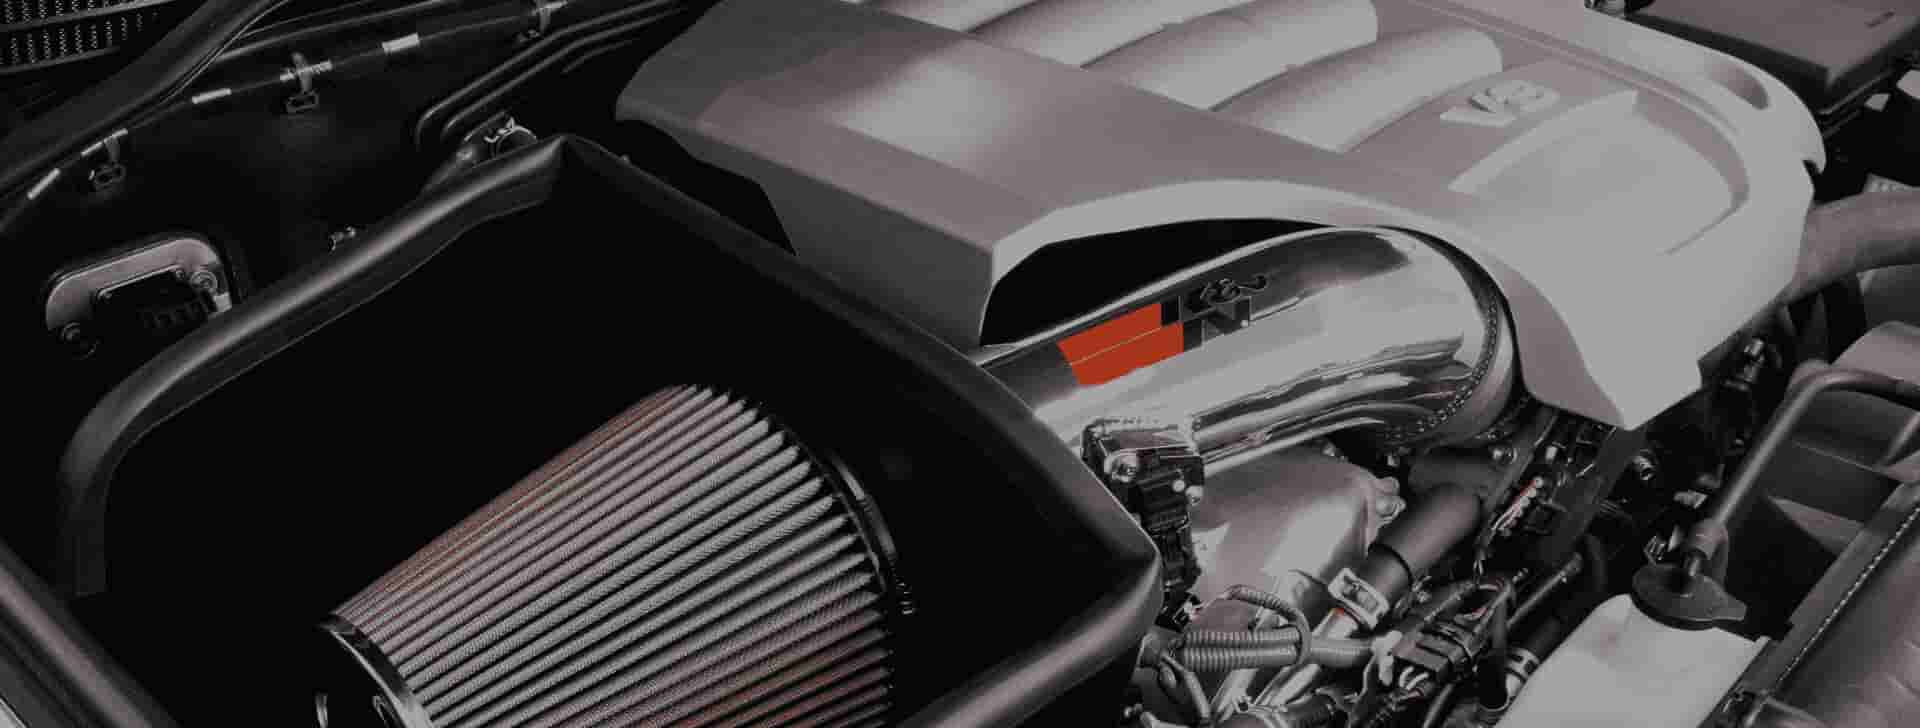 hight resolution of cold air intakes